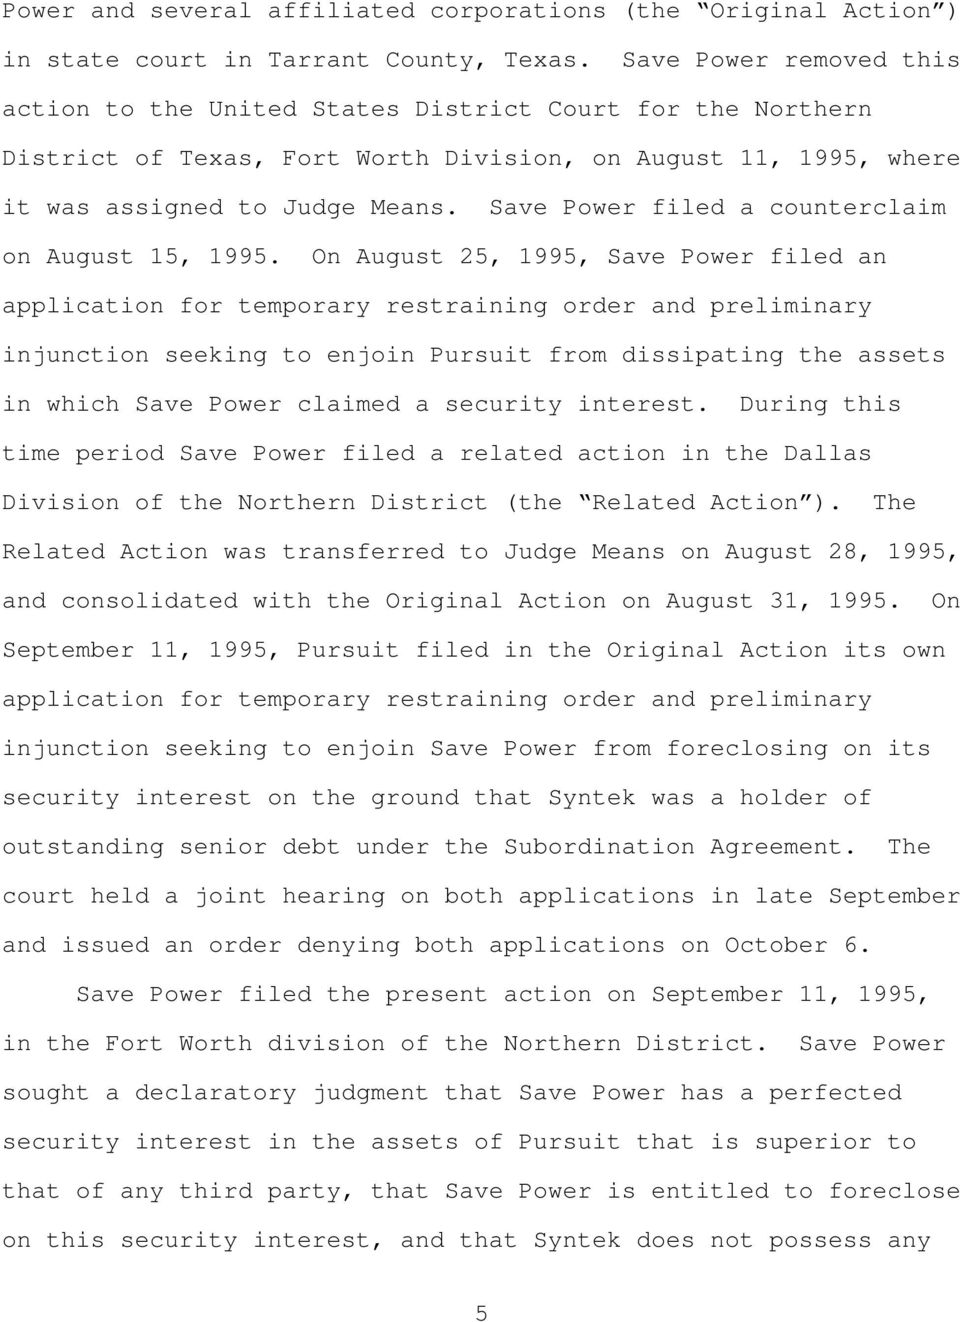 Save Power filed a counterclaim on August 15, 1995.